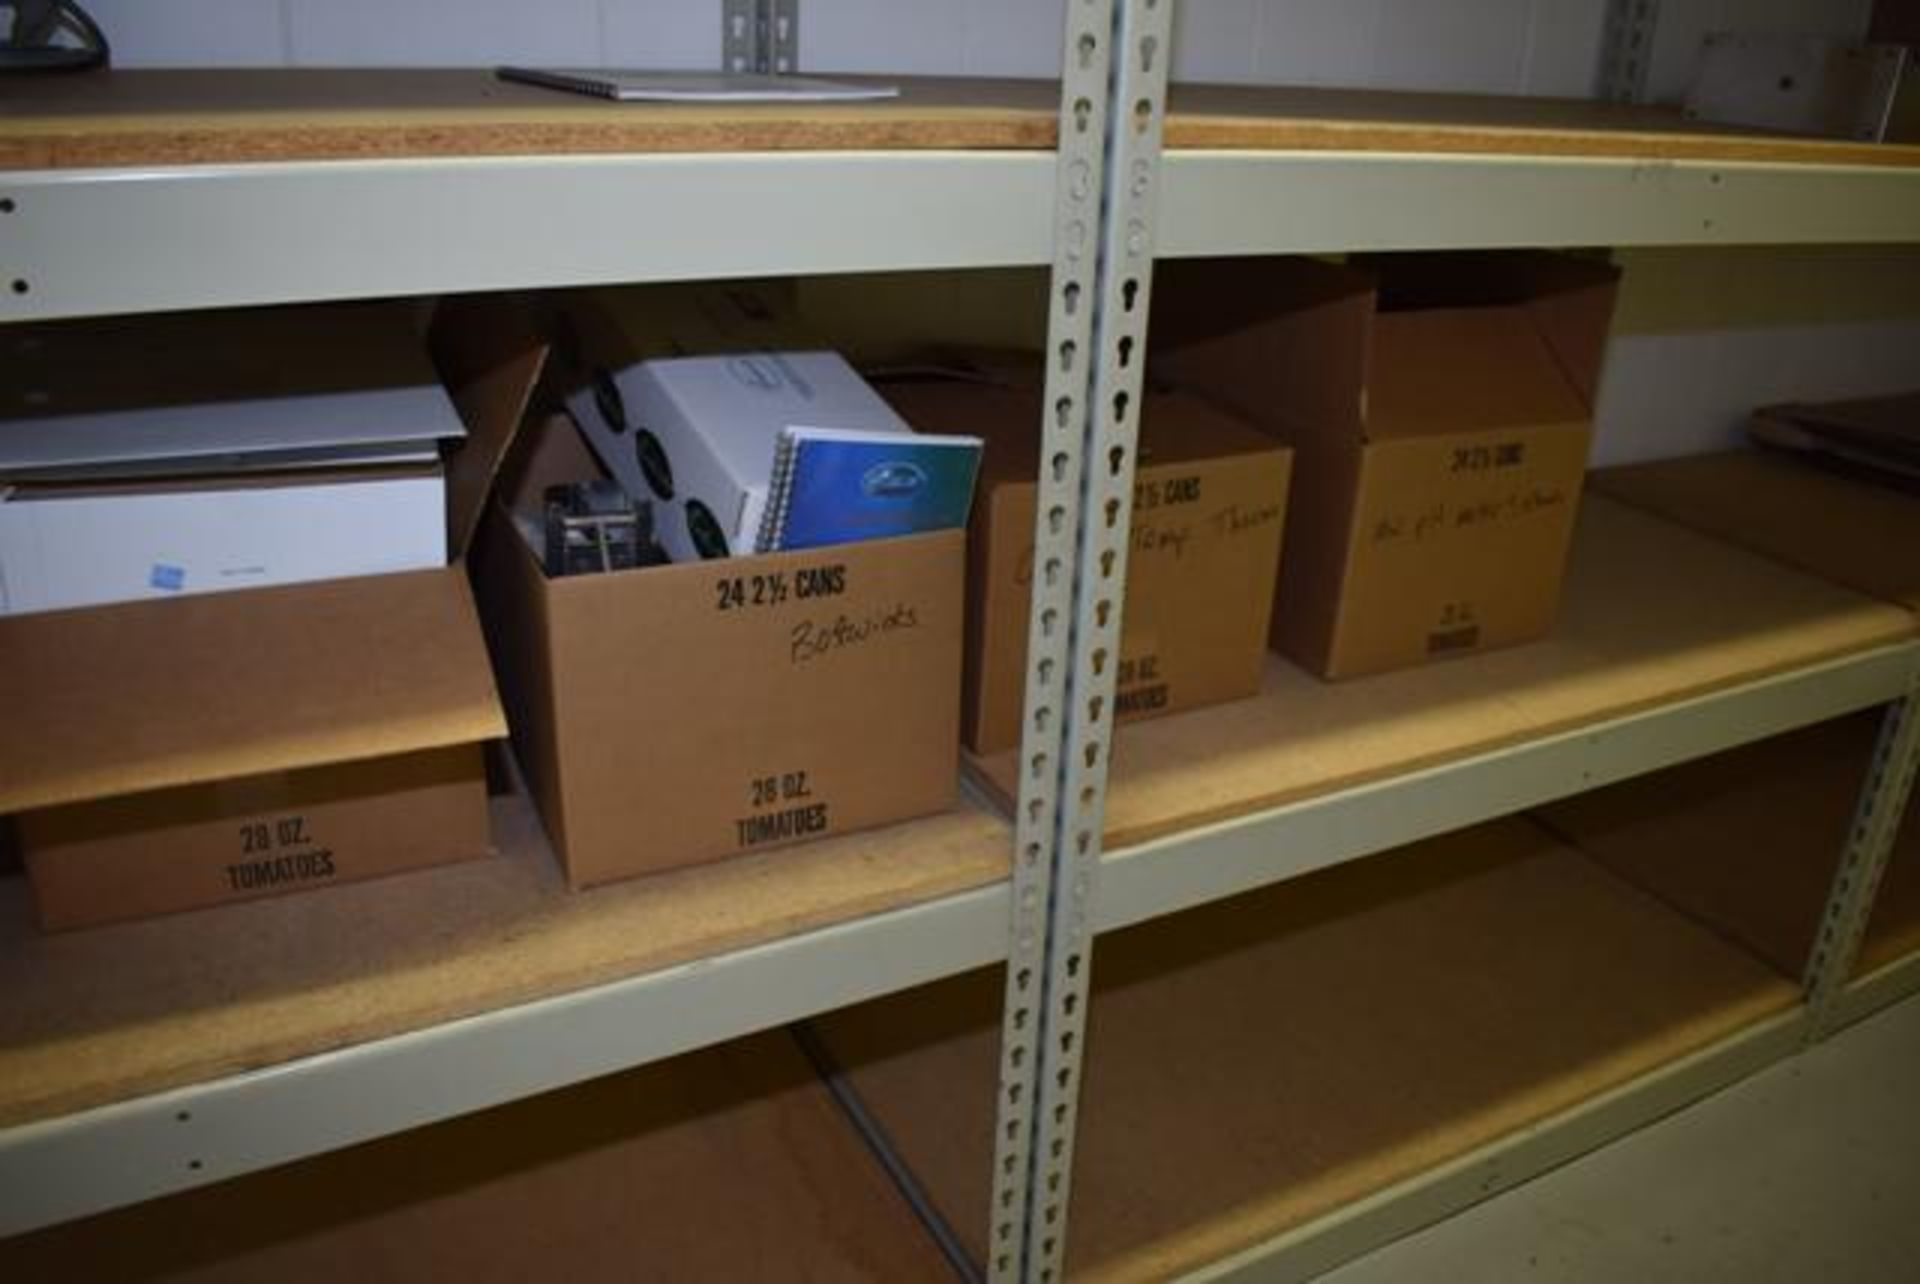 Lot 611 - Lab Shelf Contents - Meters, Charts, Loading Fee: $100